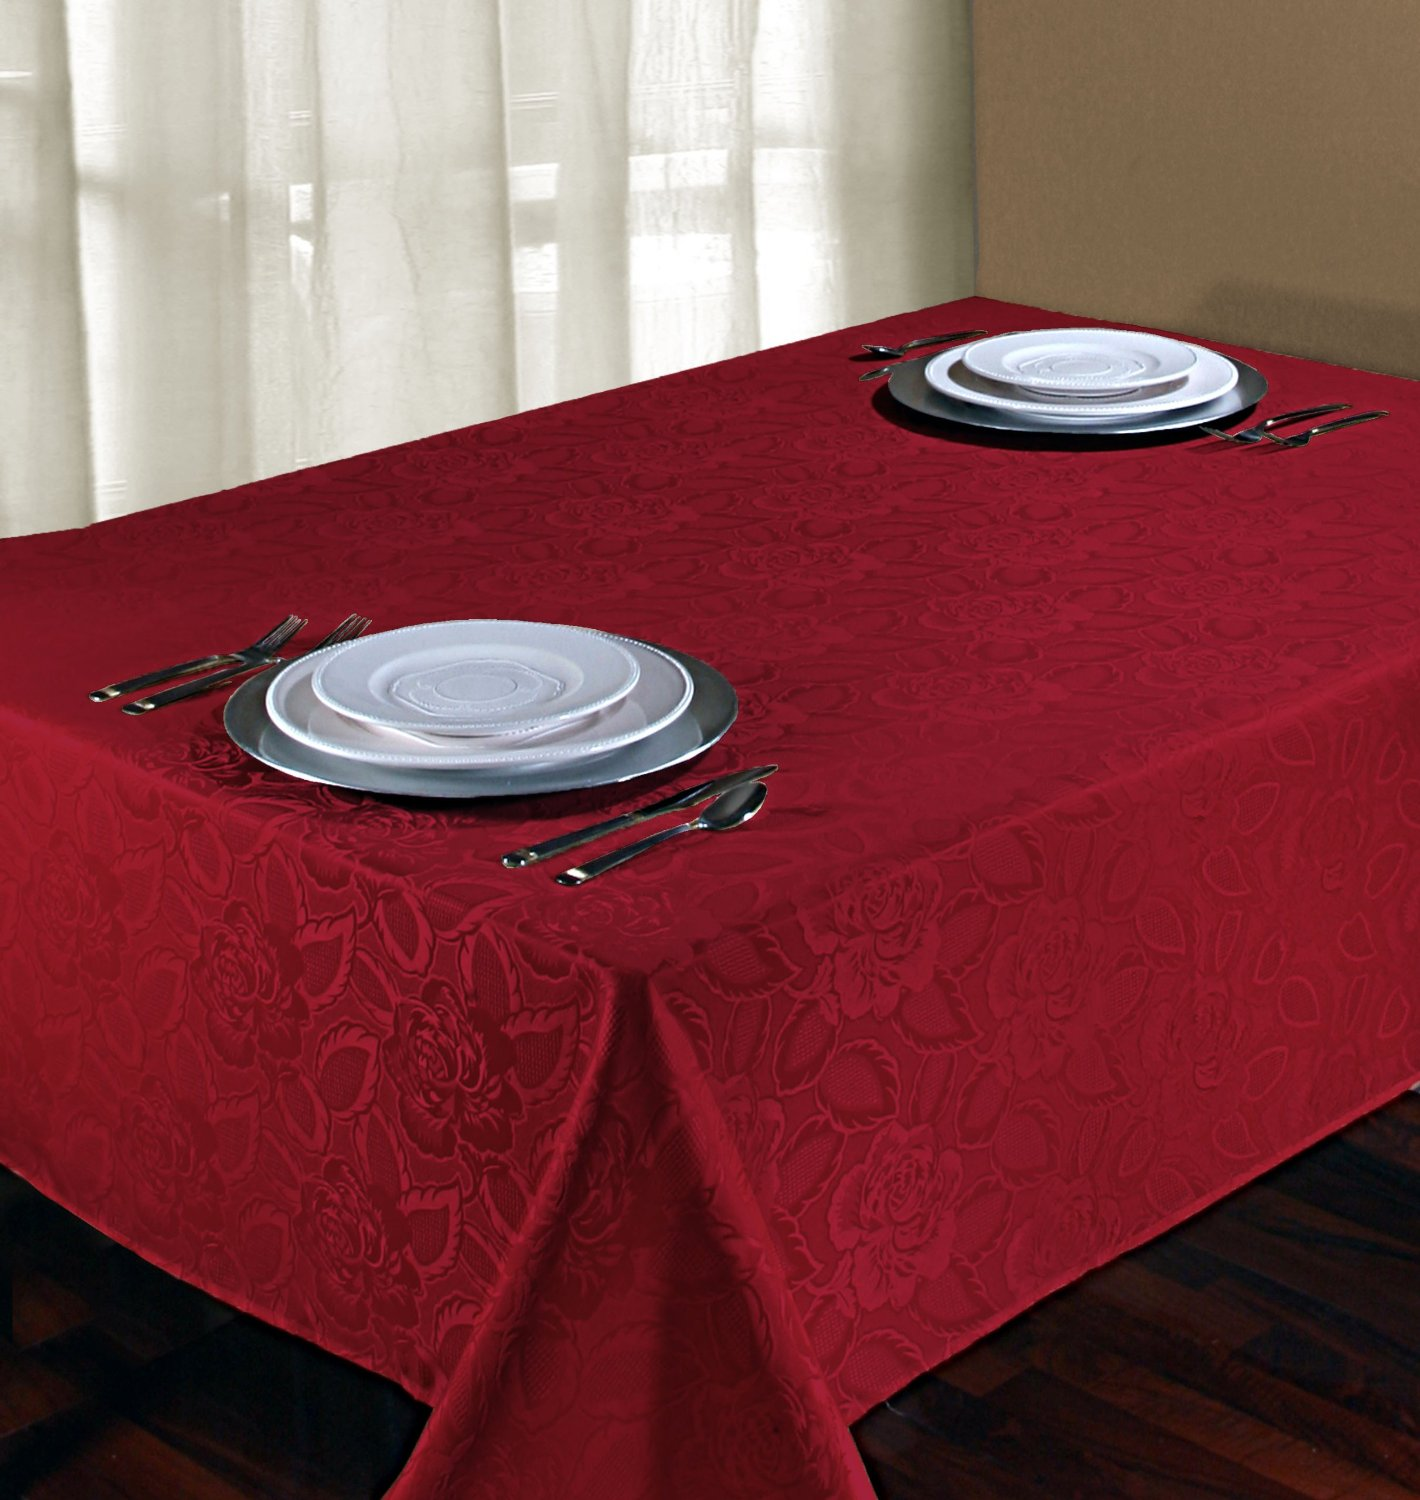 Wondrous Oblong Tablecloth for Dining Decor Ideas: Nice Red Oblong Tablecloth For Home Decor